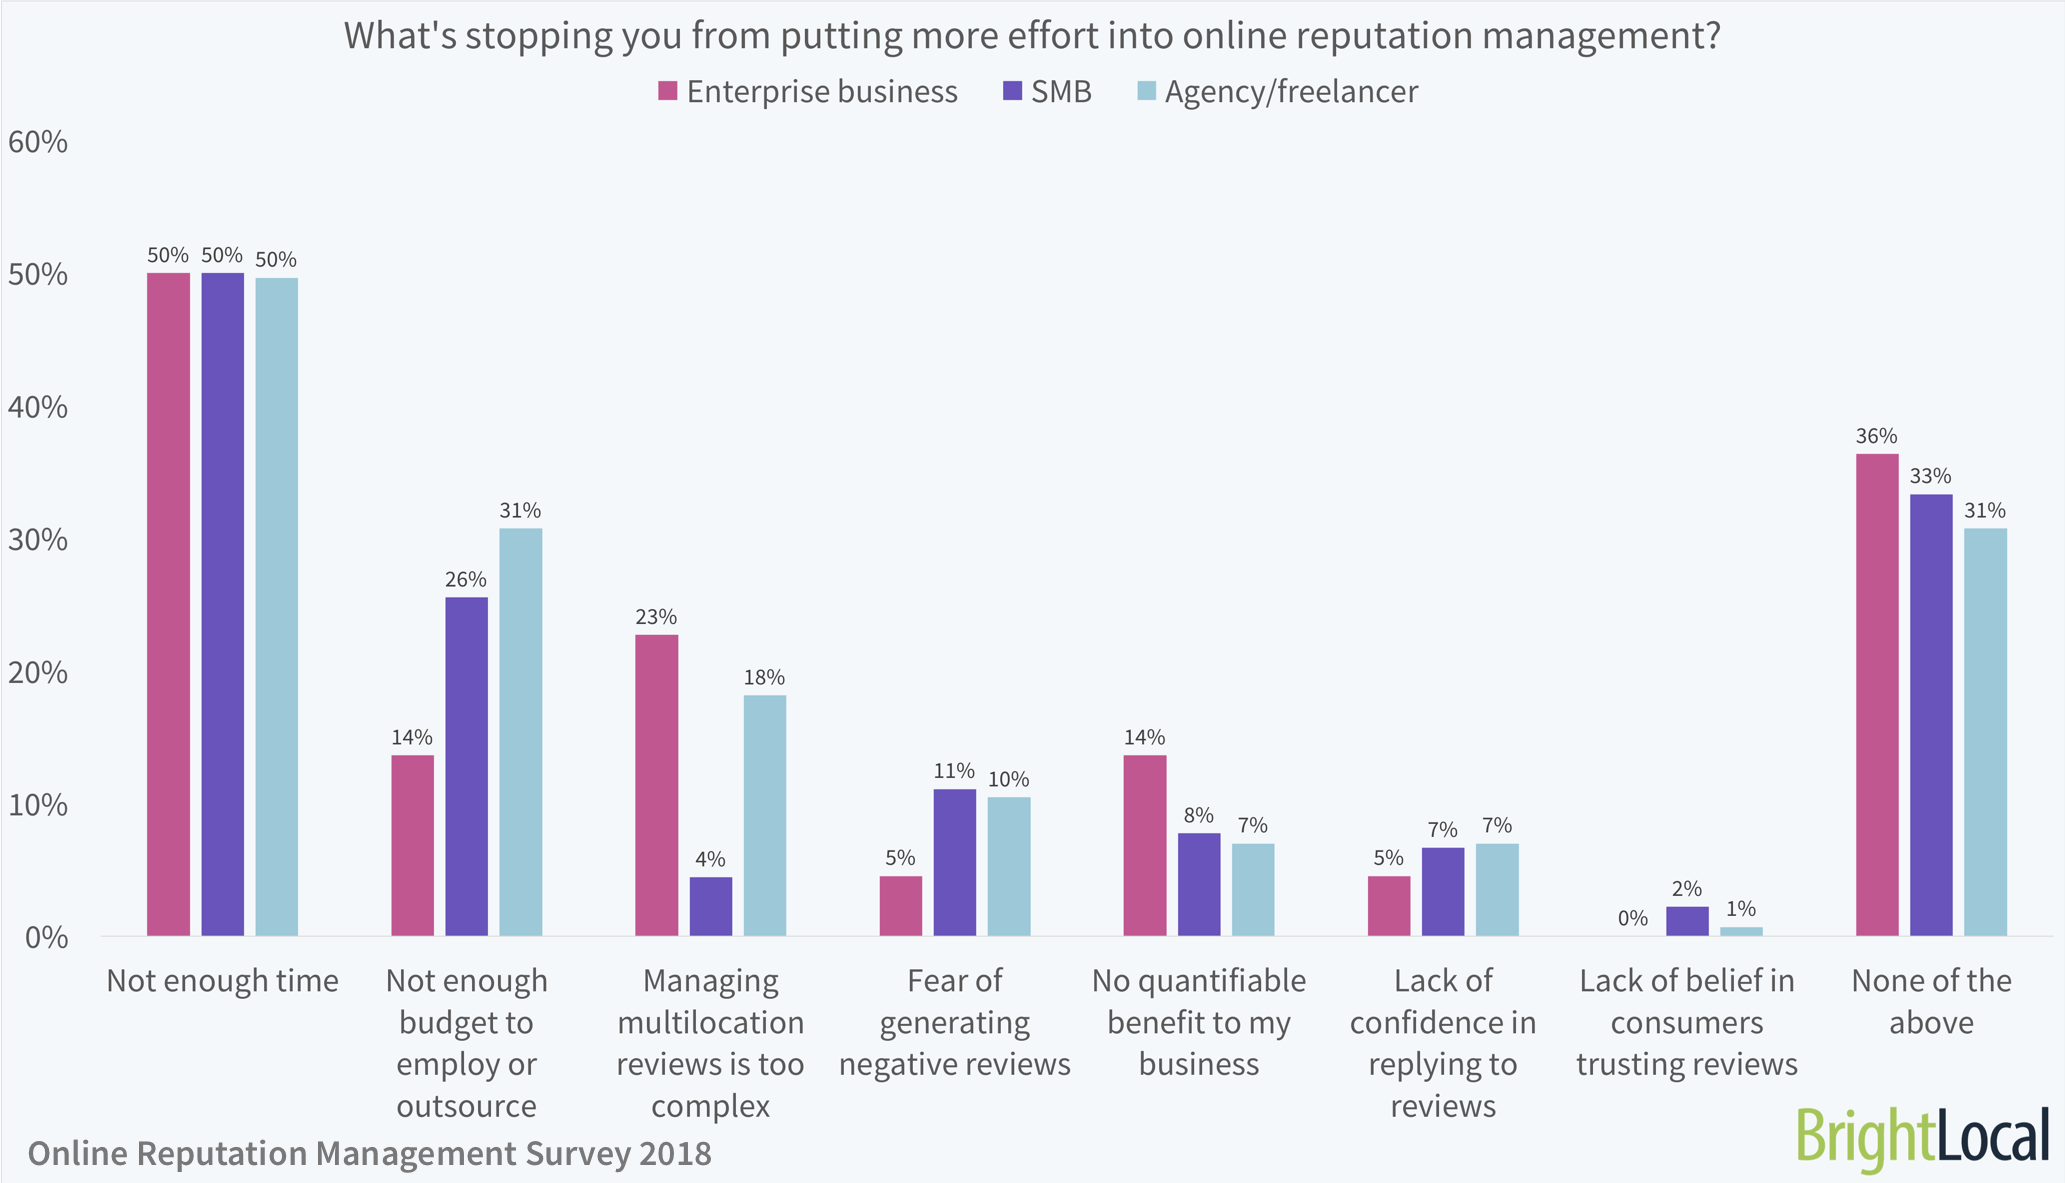 What's stopping you from putting more effort into online reputation management?